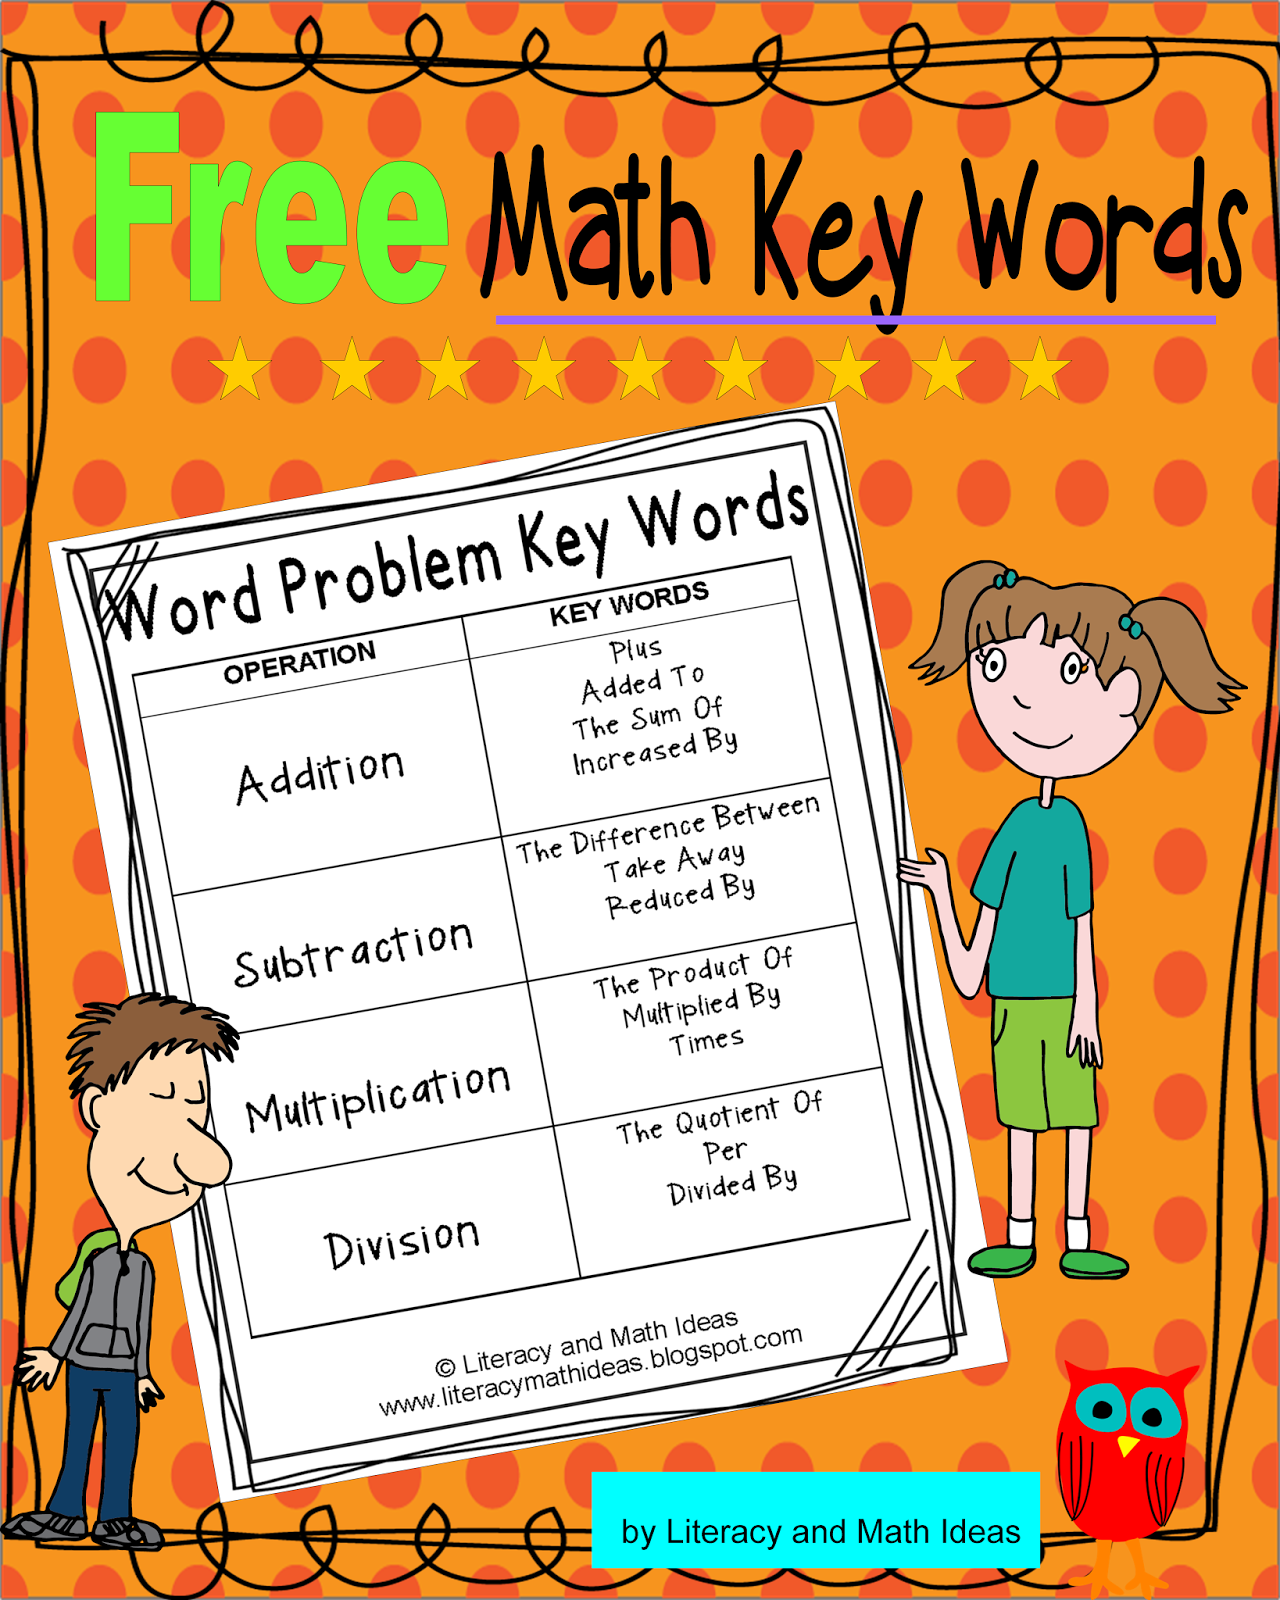 Free~Math Operation Key Words Handout | Teaching Ideas for 3rd - 5th ...